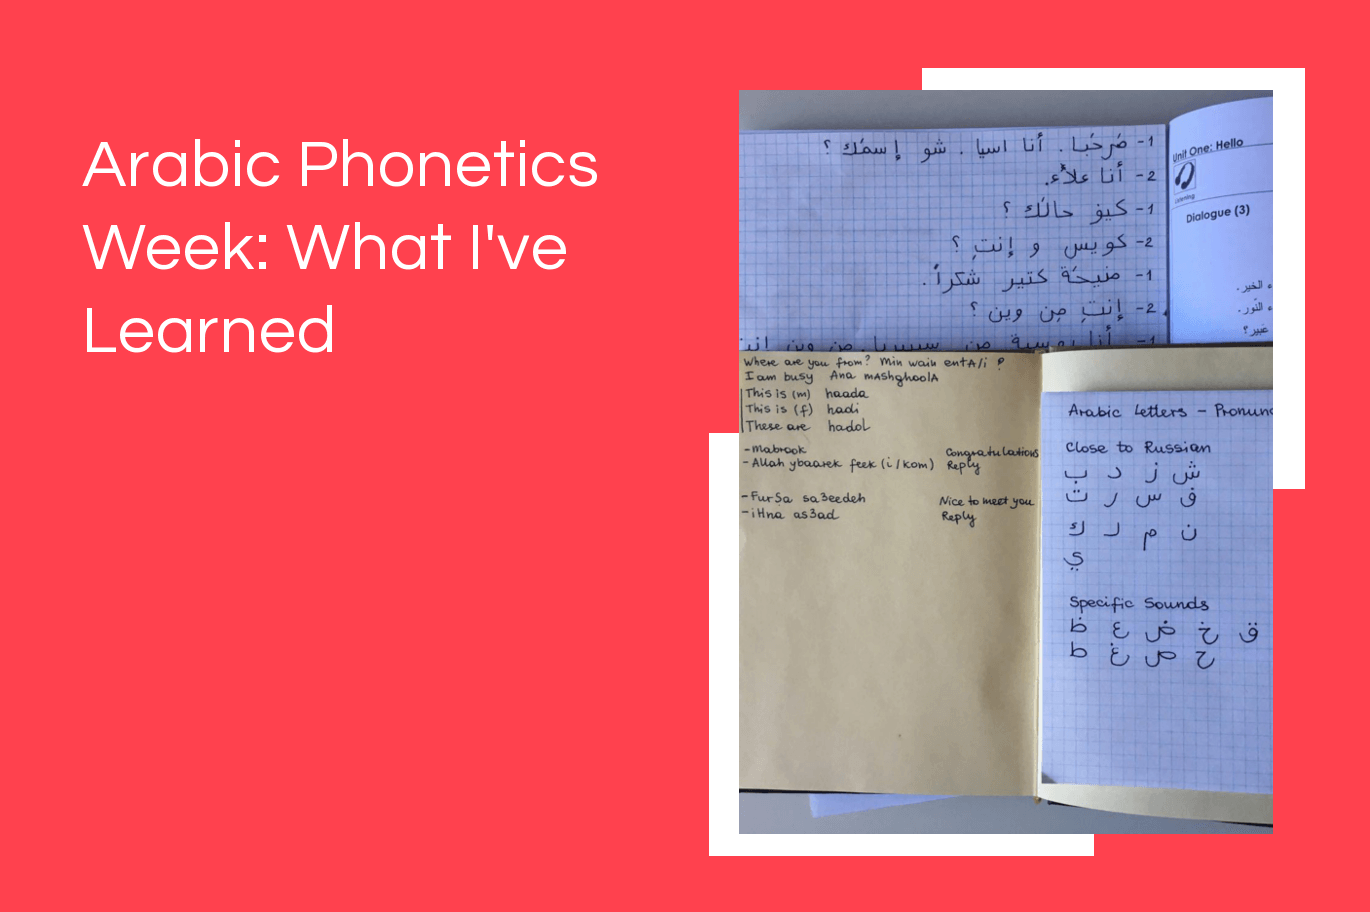 Arabic Phonetics Week: What I've Learnt - My Life in Amman